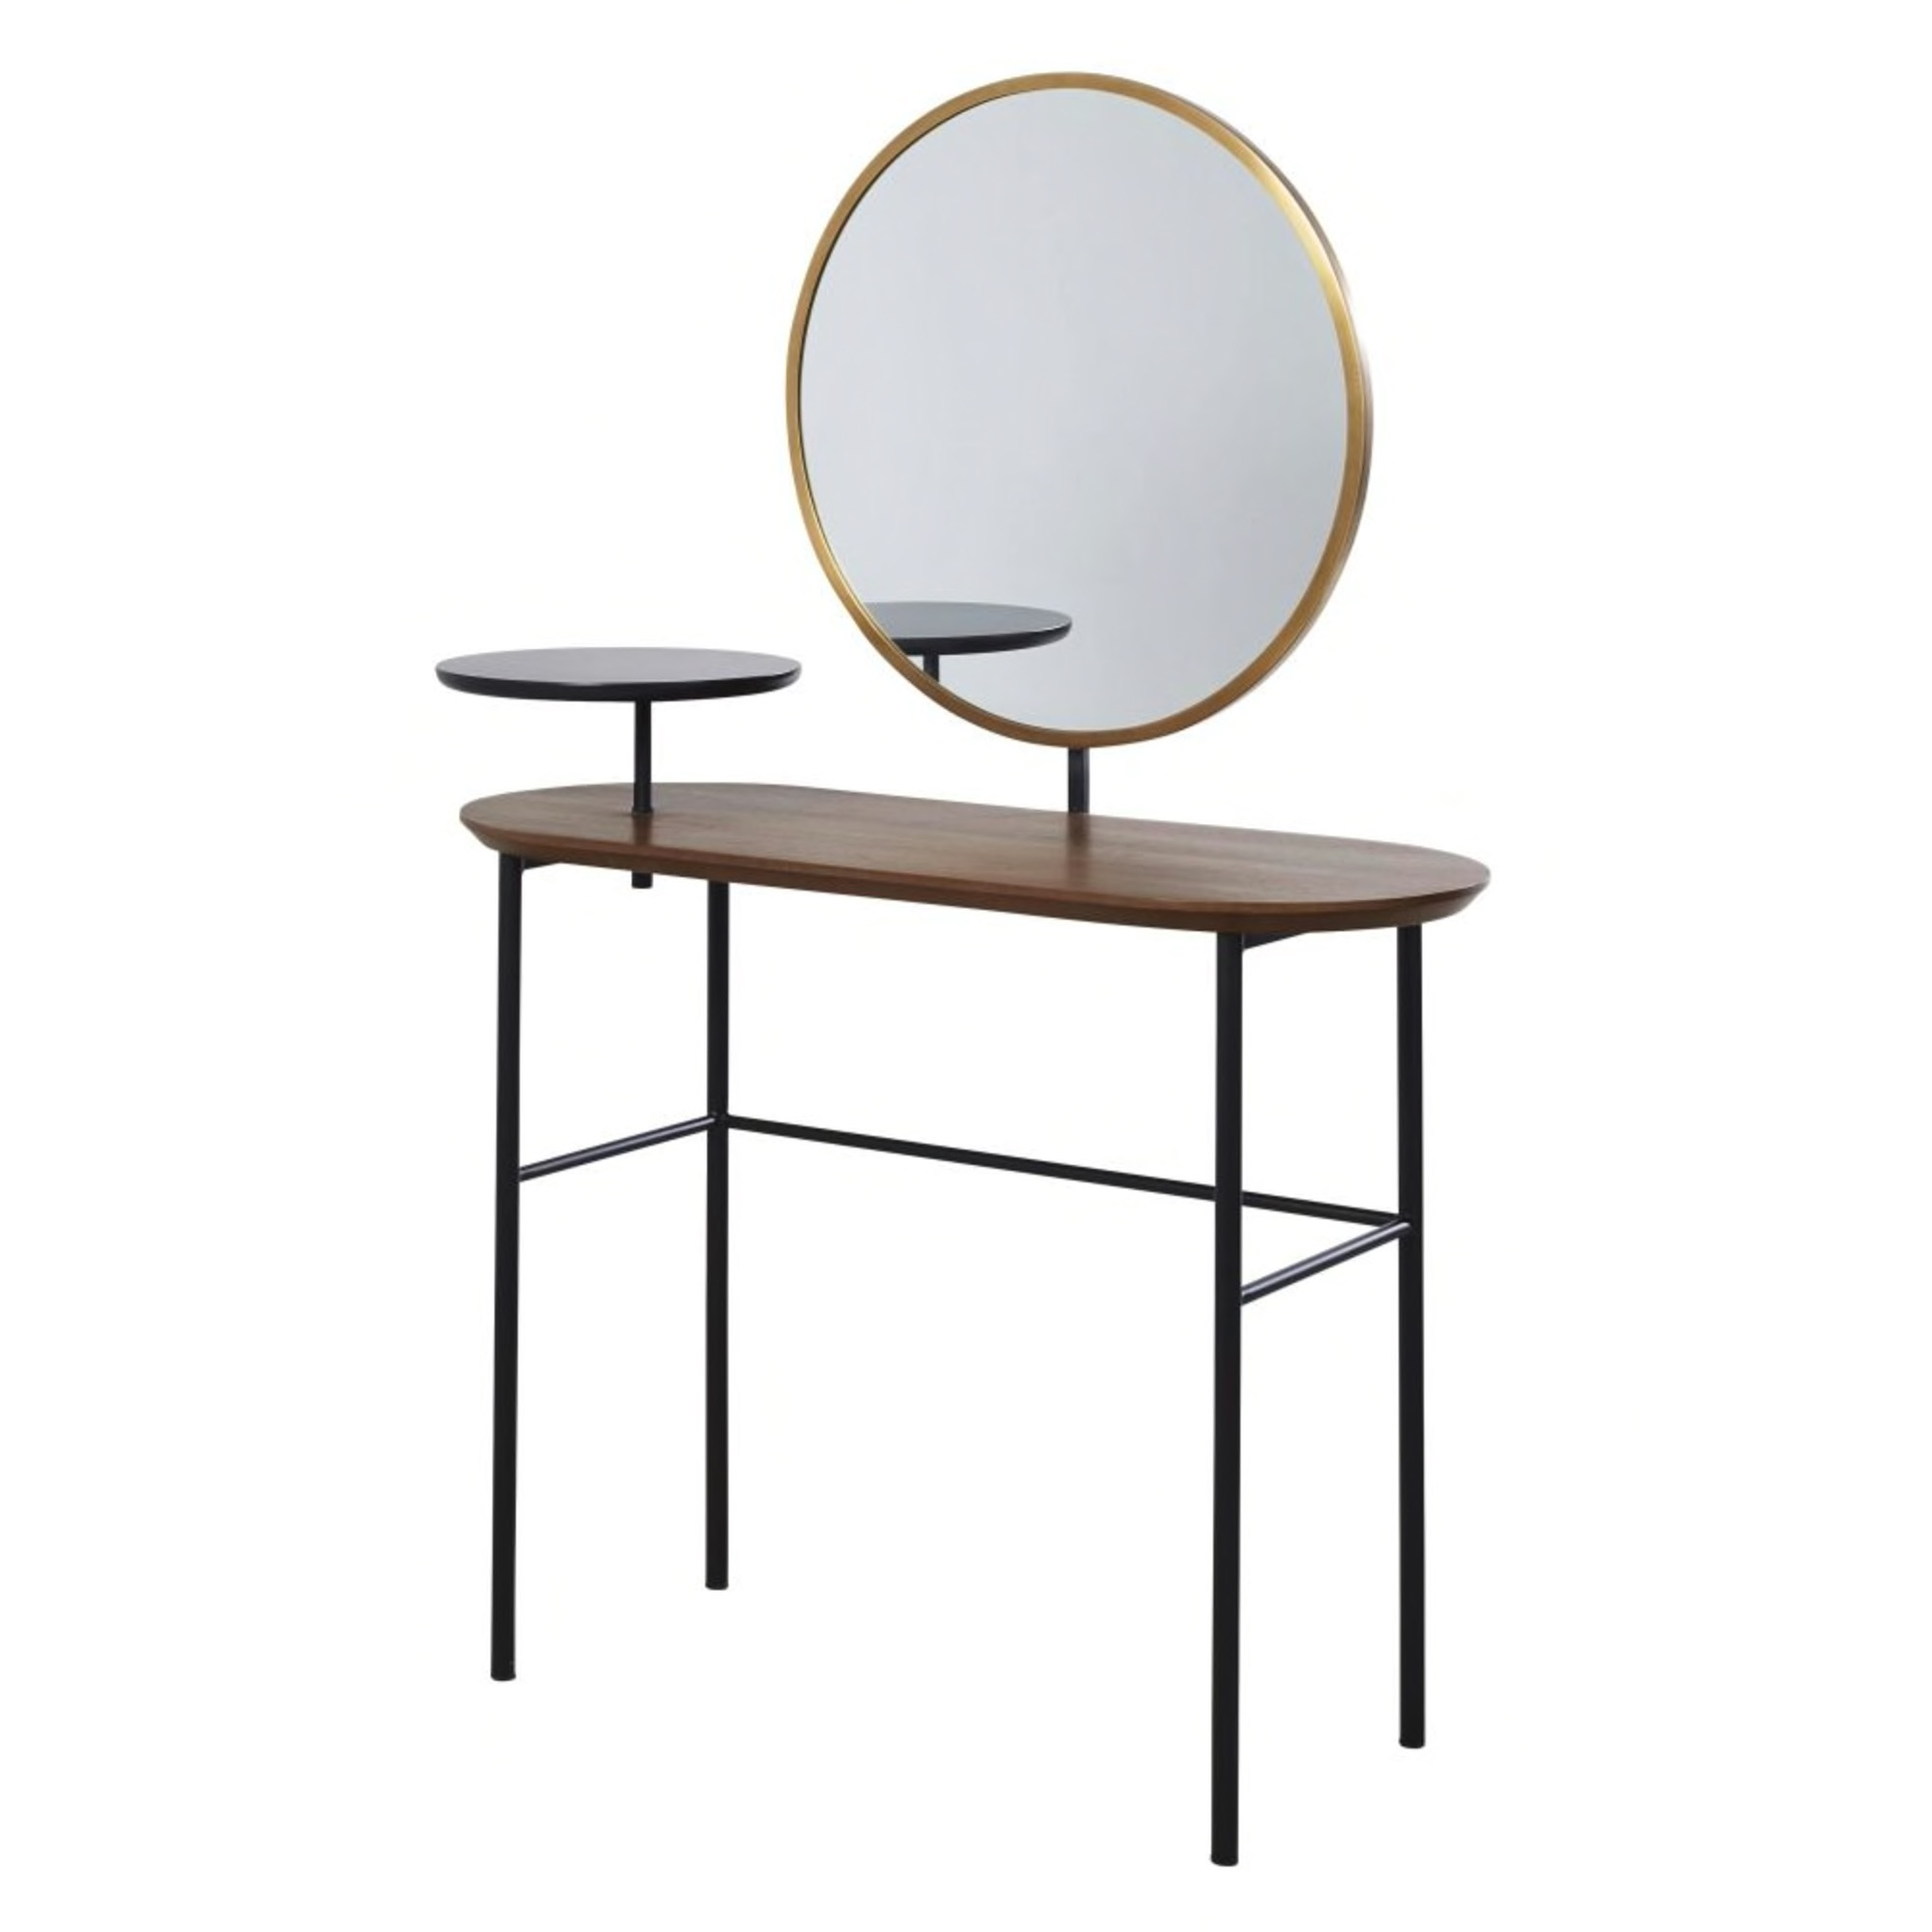 Dressing table with mirror made of imitation walnut and black metal£378.00